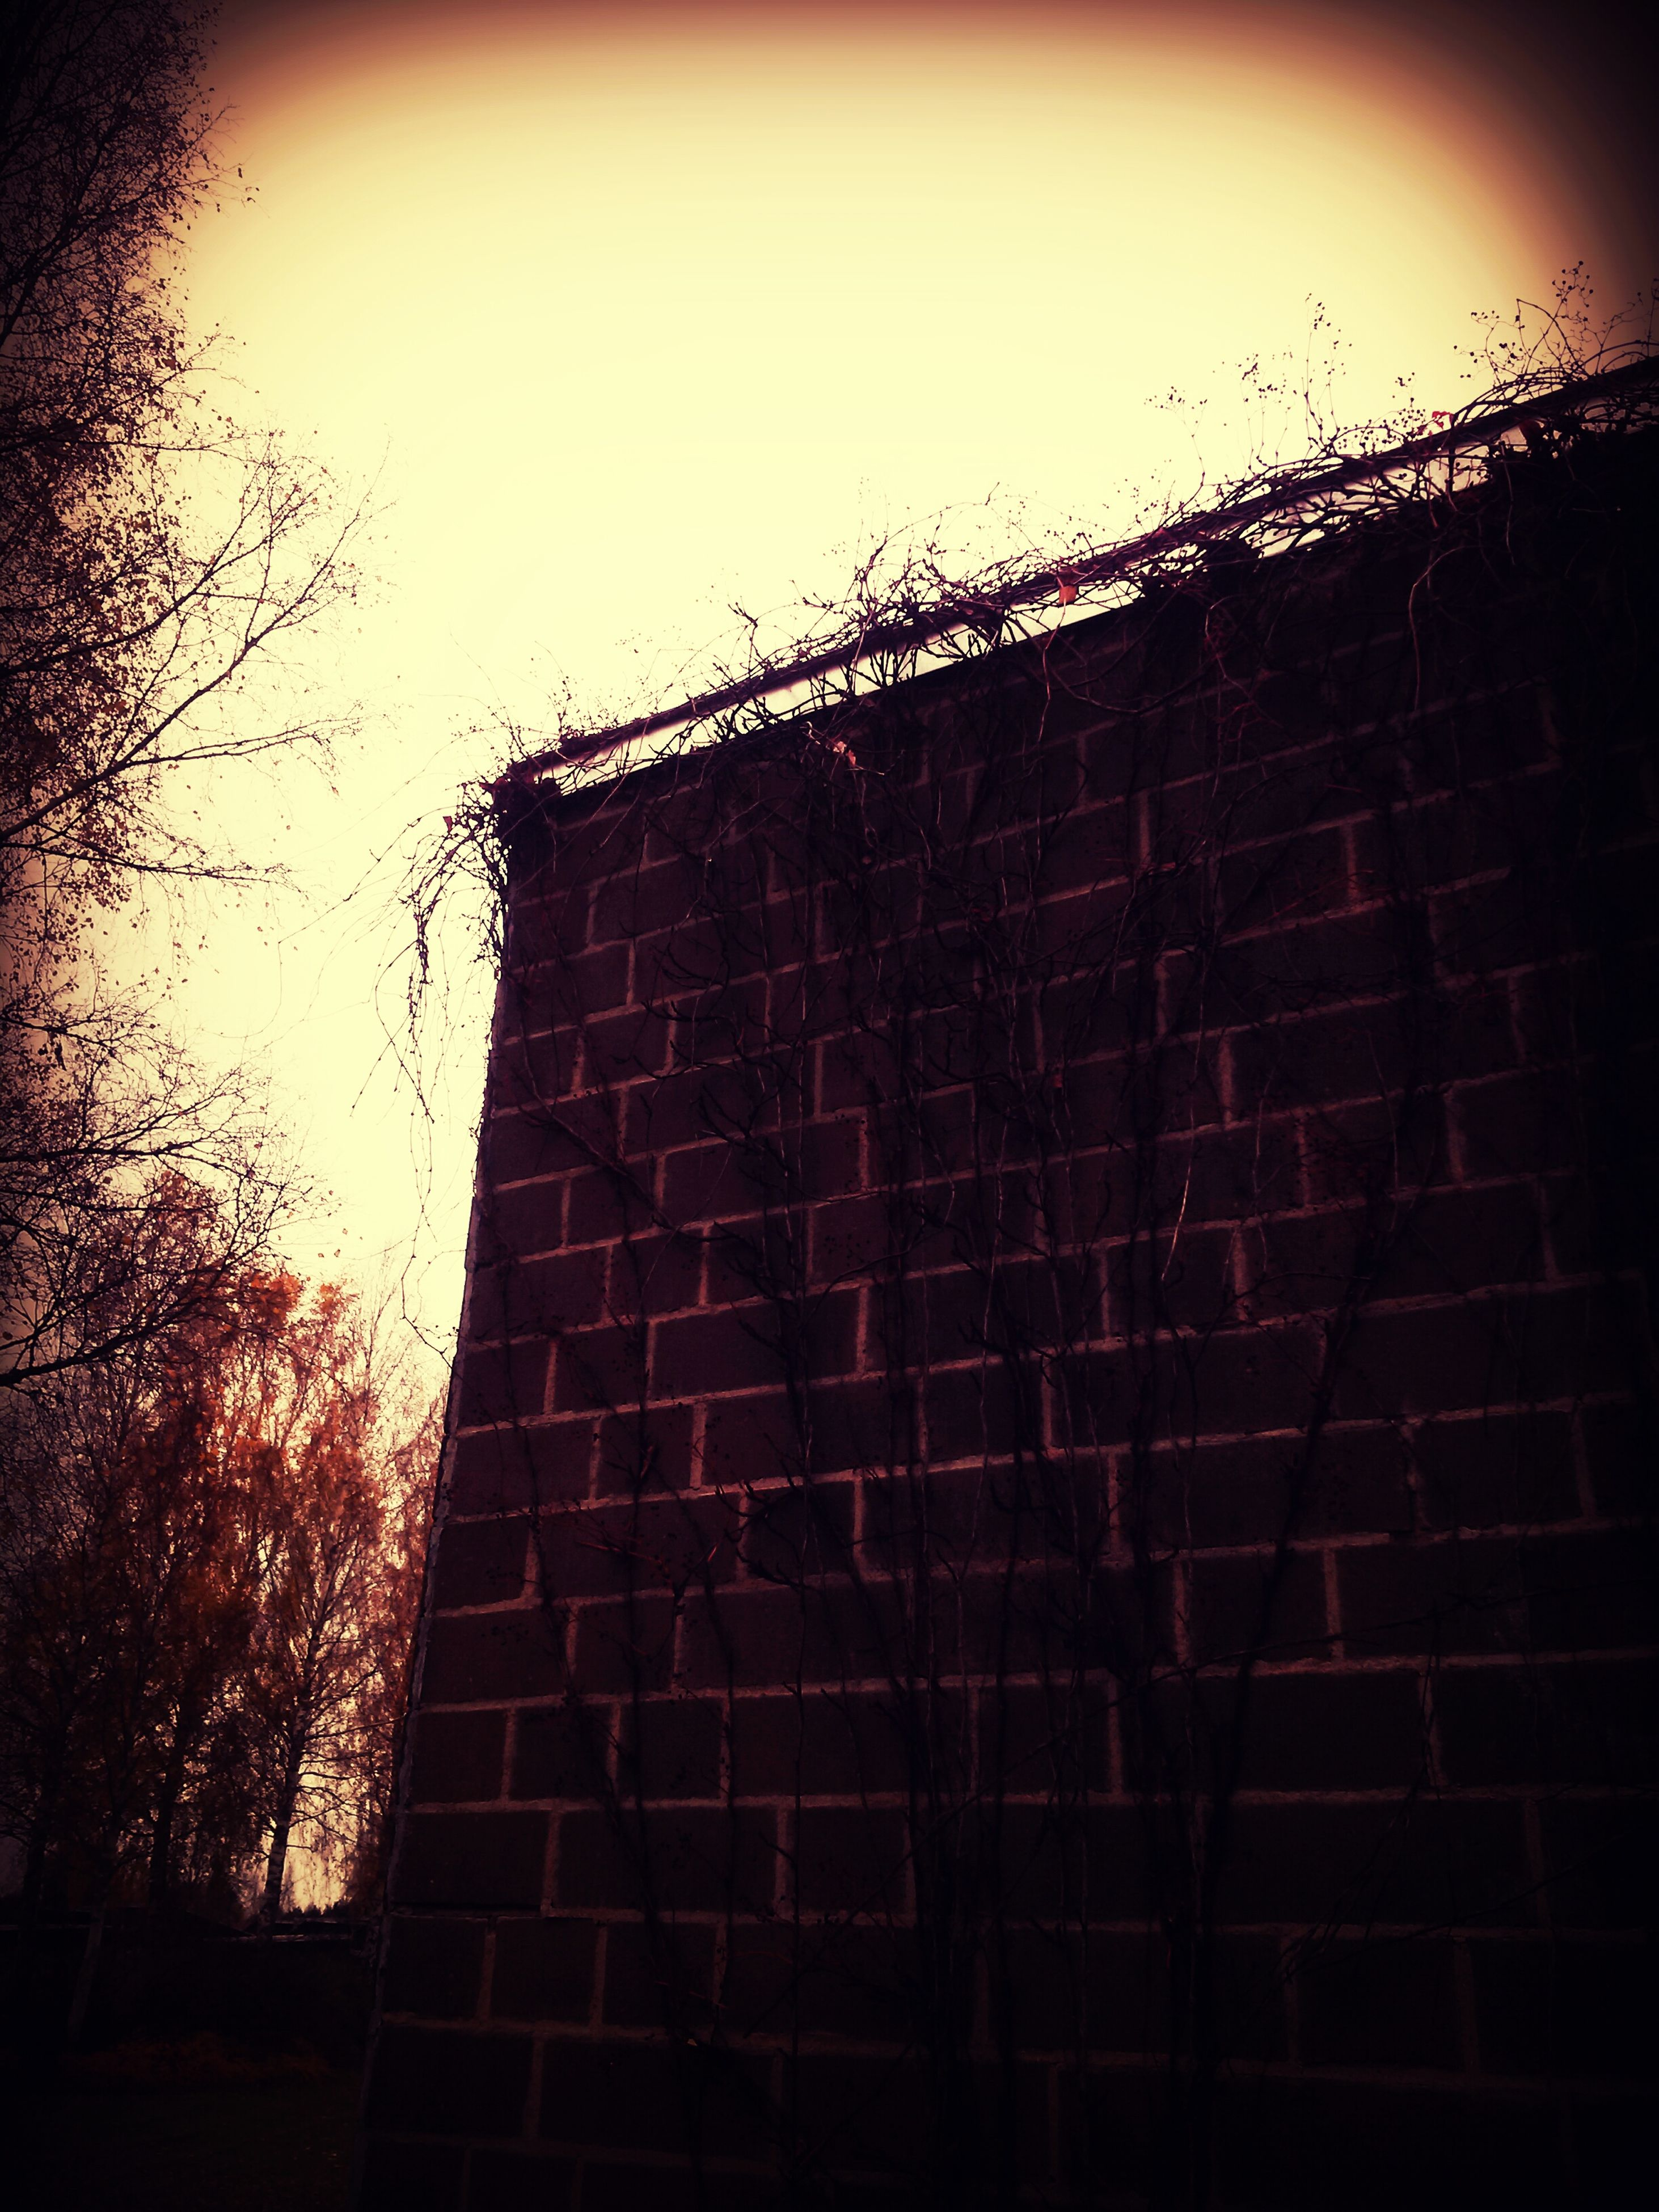 built structure, architecture, low angle view, building exterior, clear sky, silhouette, sky, brick wall, window, night, tree, outdoors, wall - building feature, no people, copy space, building, dusk, house, pattern, dark